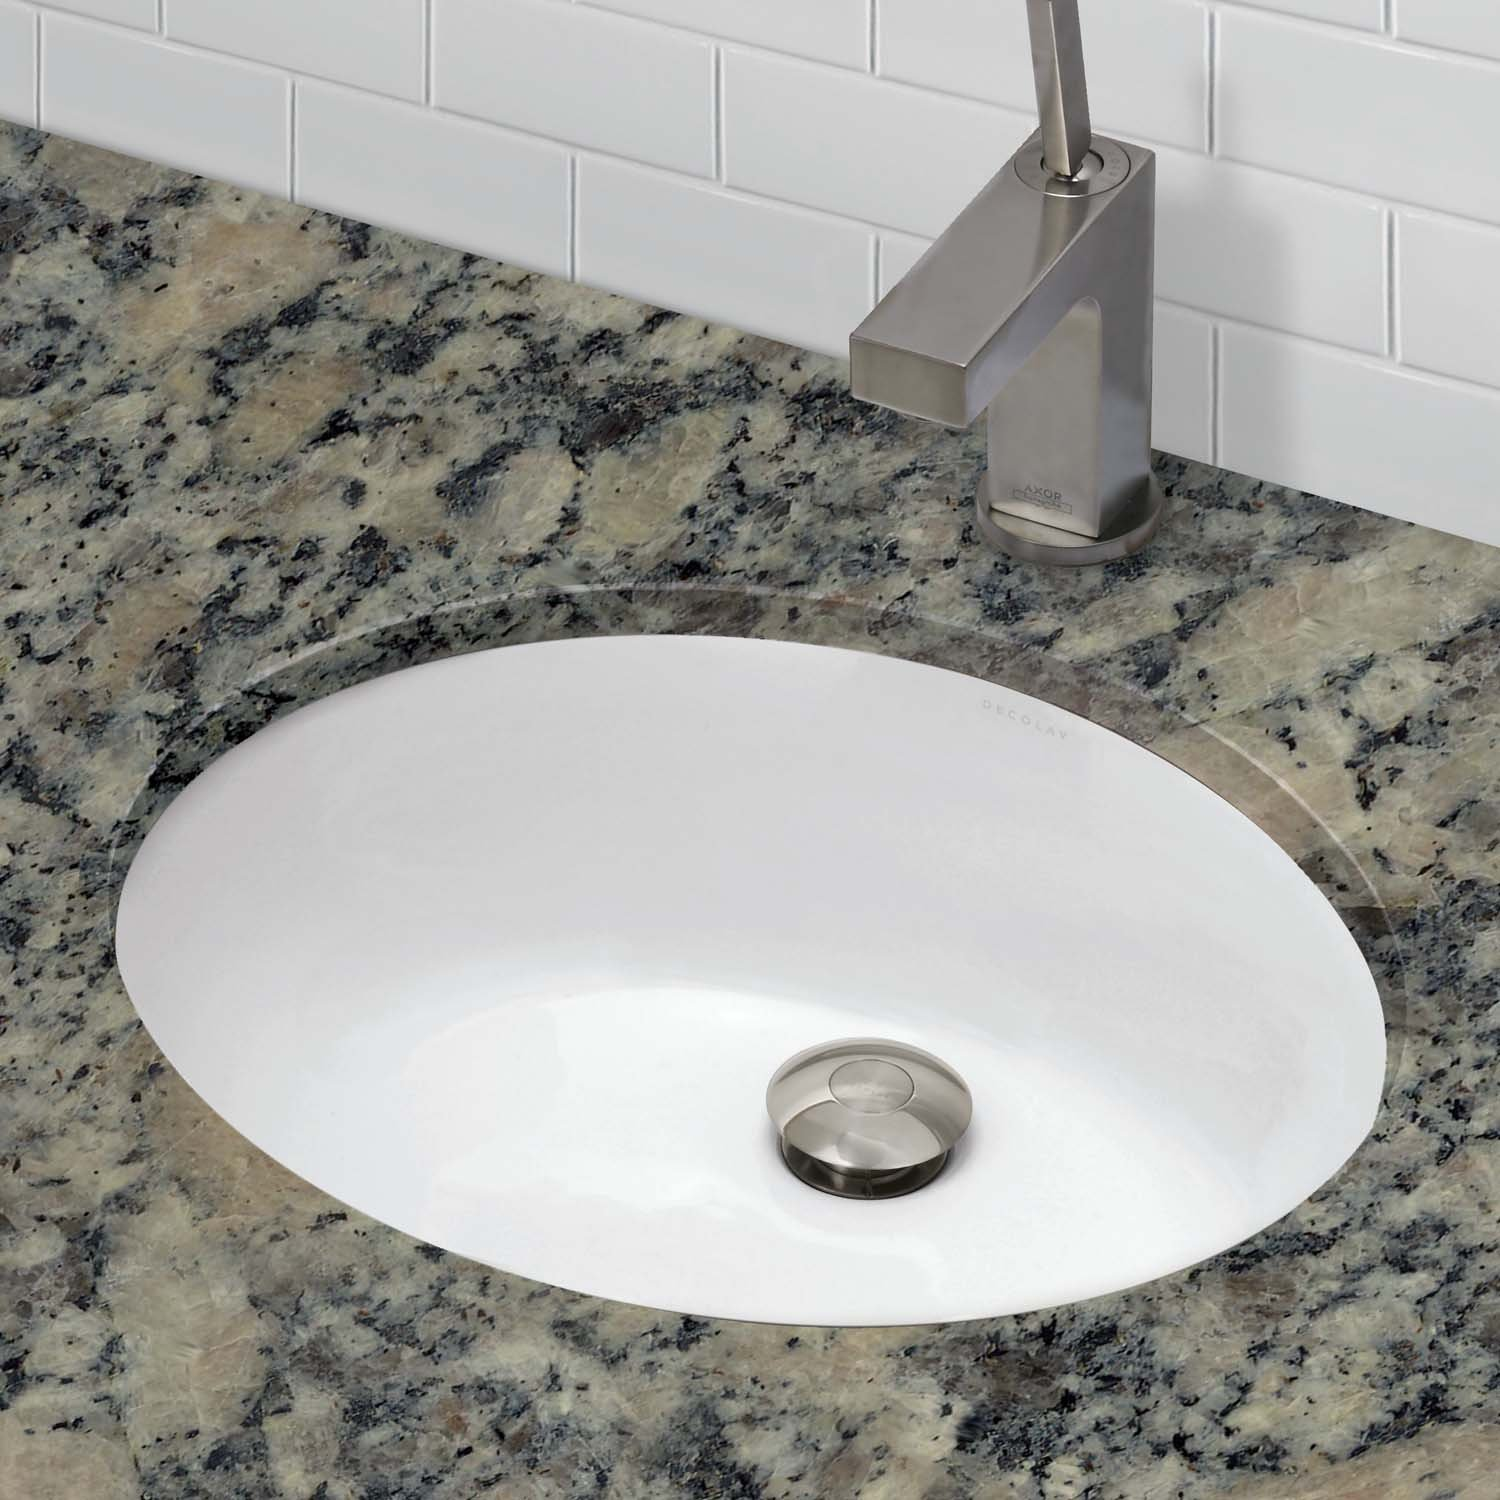 DECOLAV 1401-CWH Carlyn️ Classically Redefined Oval Vitreous China Undermount Lavatory Sink with Overflow, White by Decolav (Image #2)